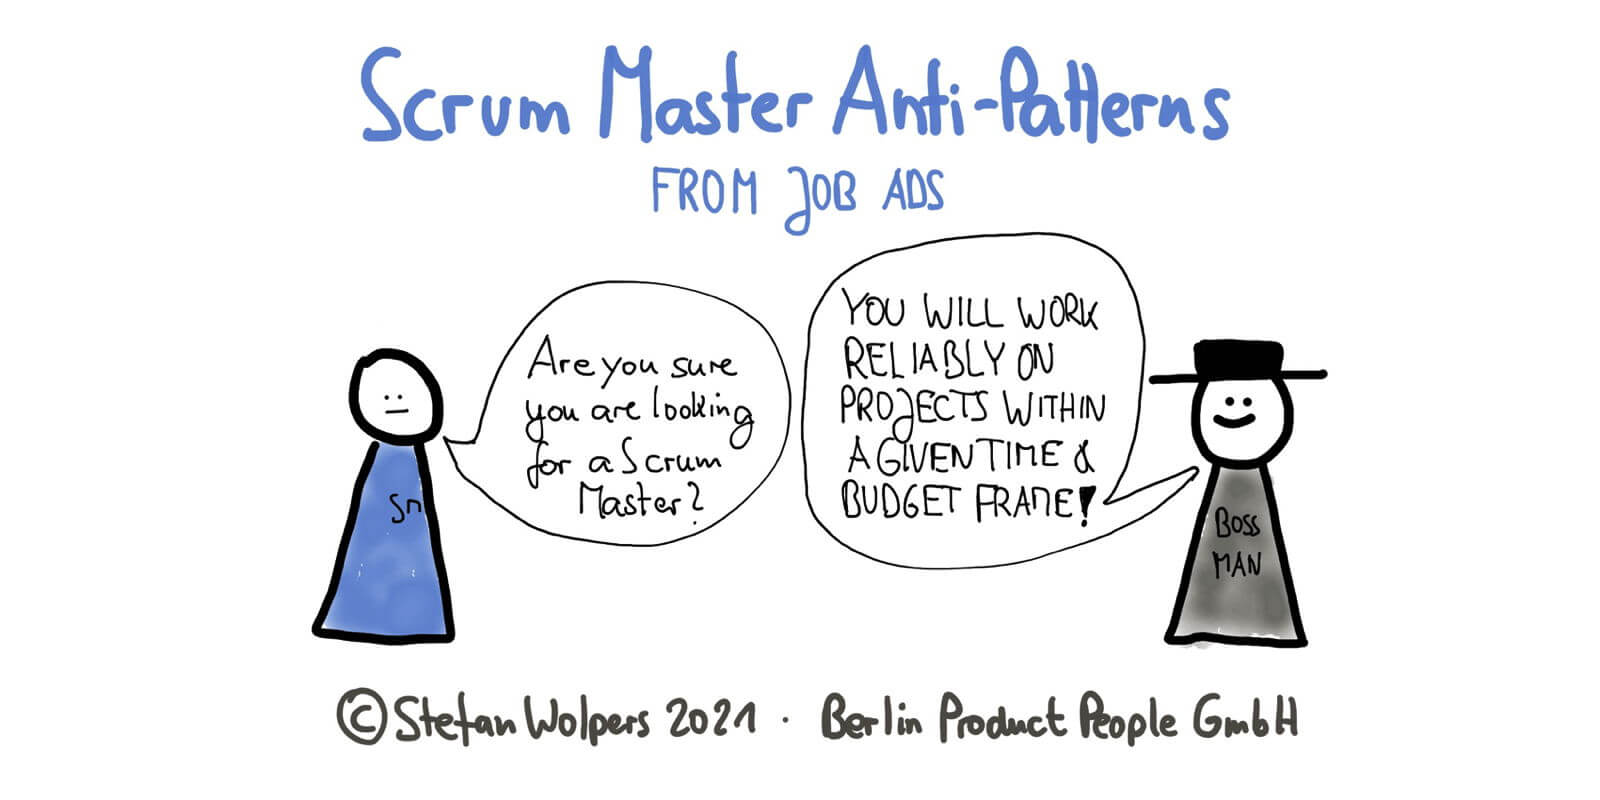 22 Scrum Master Anti-Patterns from Job Ads: From Funny to What the Heck?